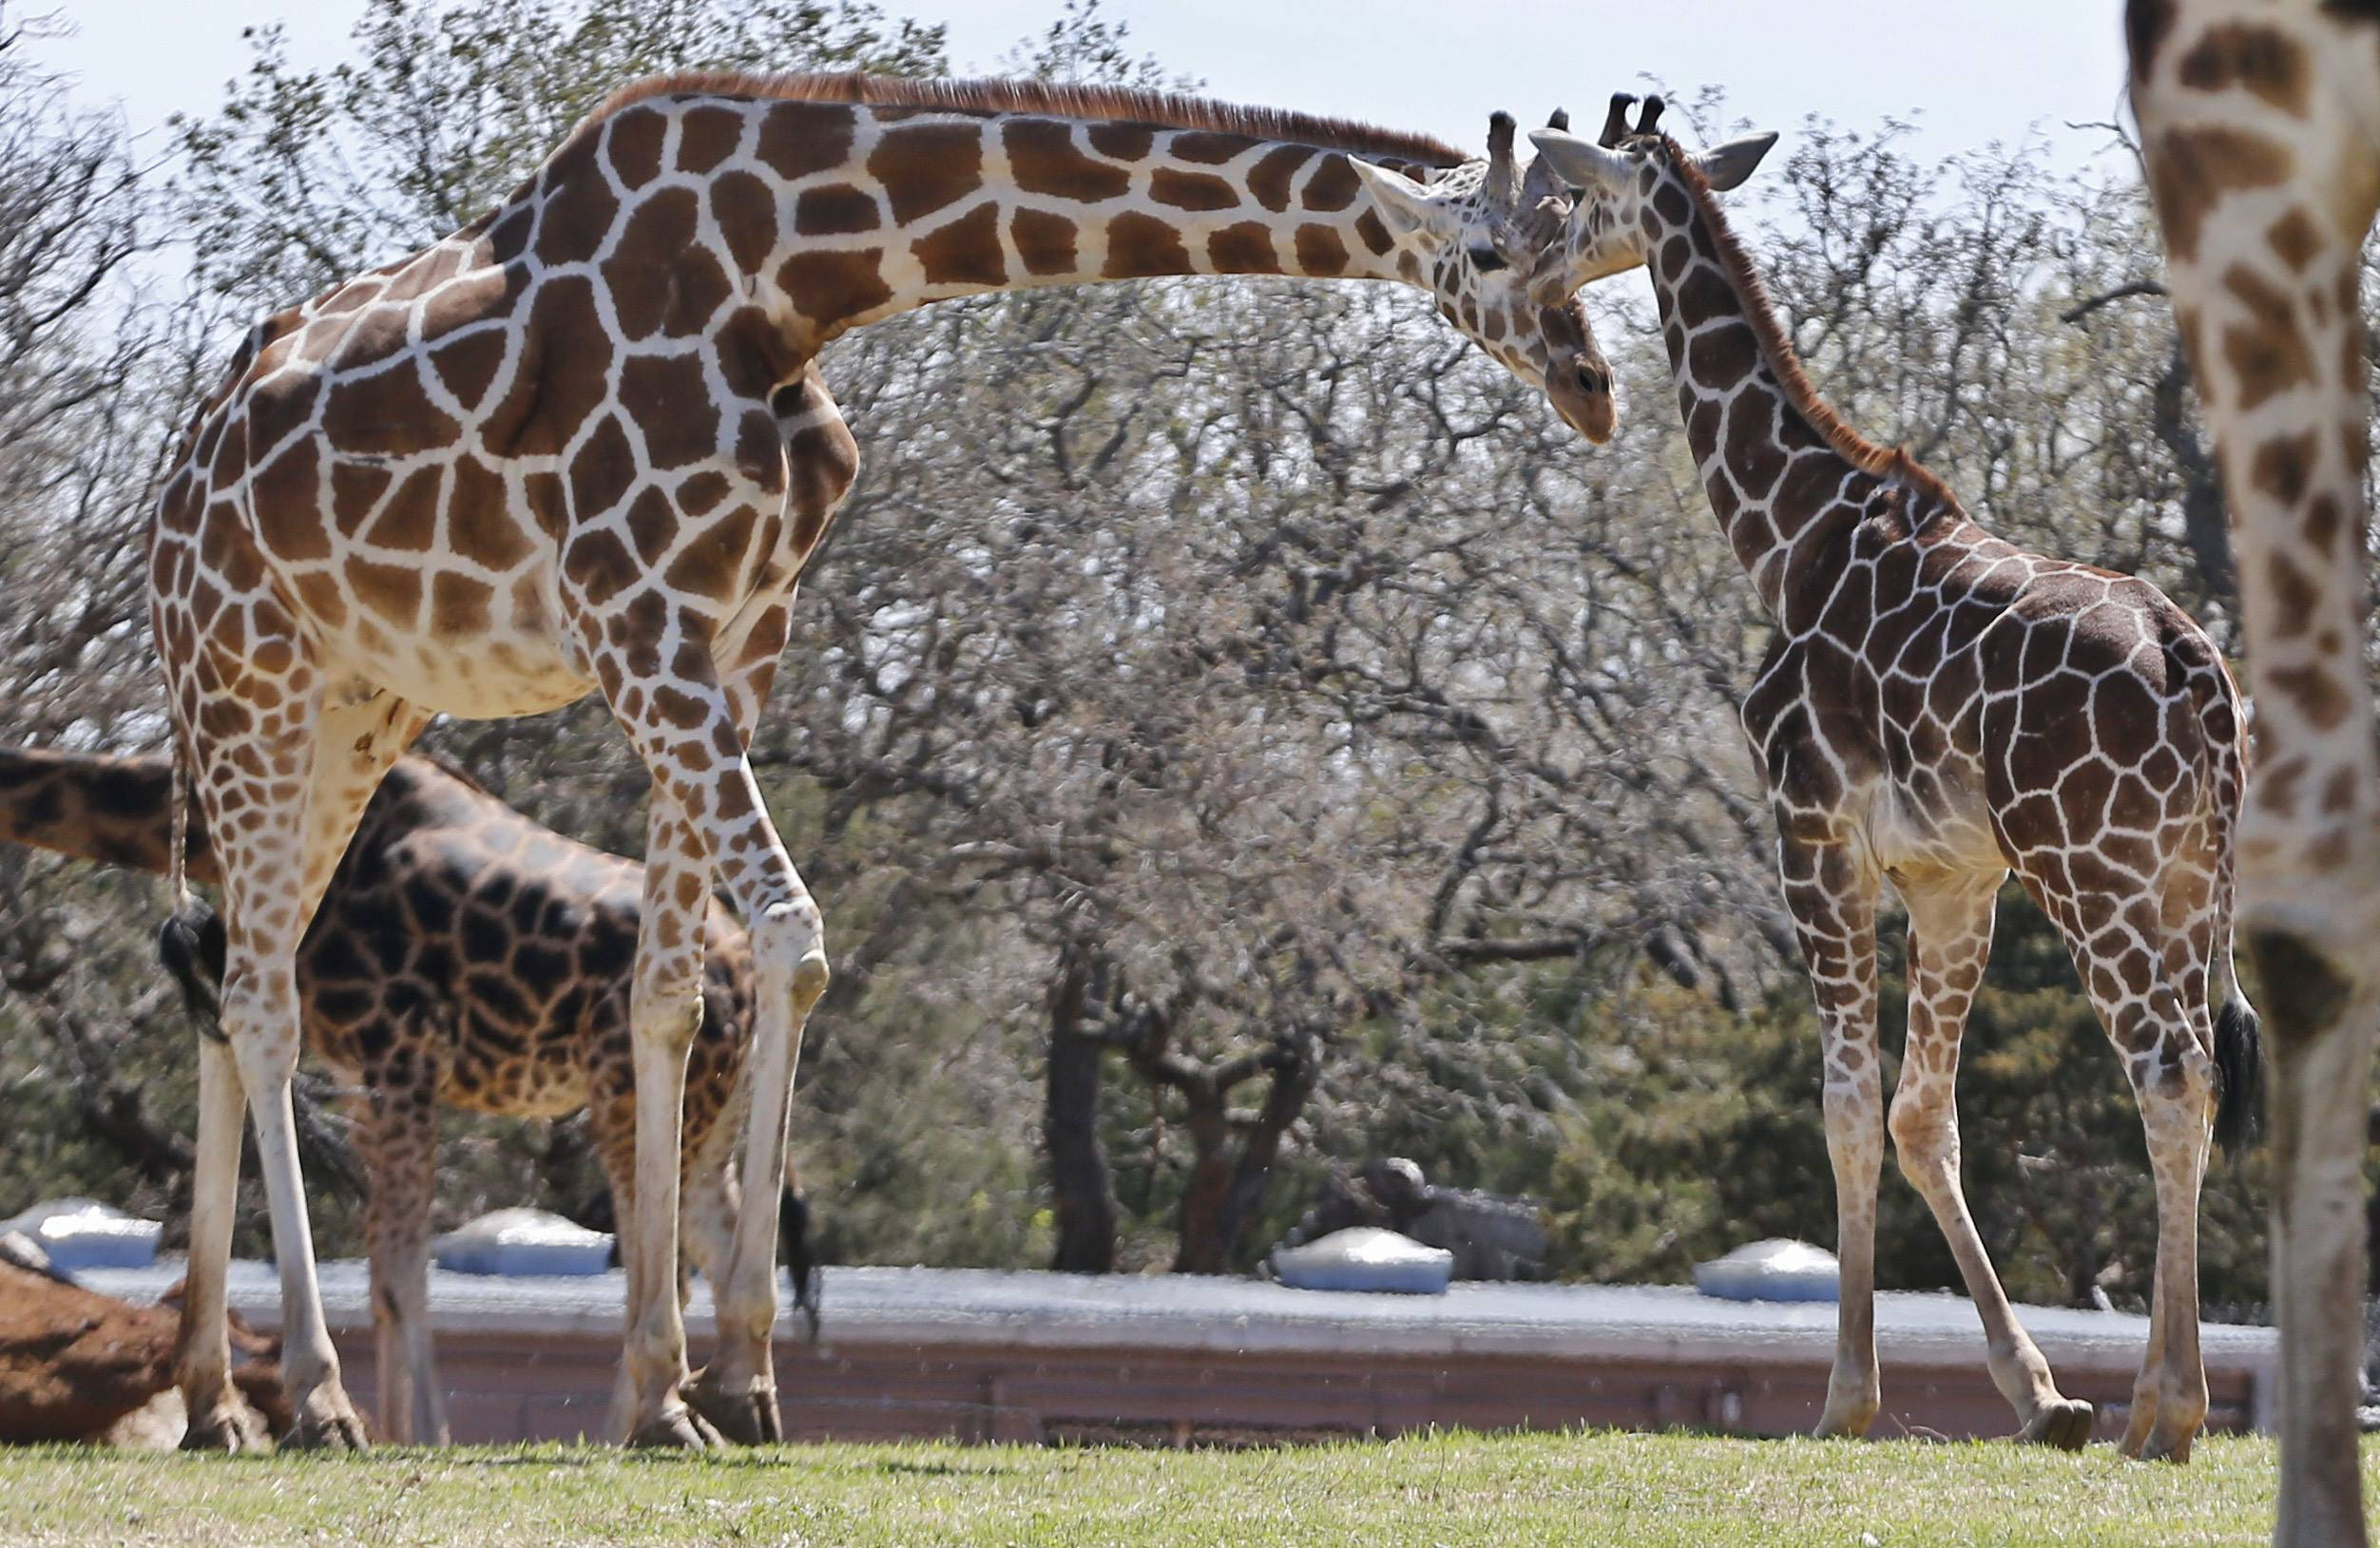 Six-month-old Kyah, a giraffe at the Oklahoma City Zoo, stands next to her mother, Ellie, at the zoo in Oklahoma City, Friday, April 4, 2014. Kyah will undergo surgery at Oklahoma State University to repair a vessel in her heart that has wrapped around her esophagus, making it difficult for her to eat solid foods, at a time when her mother is trying to wean her.